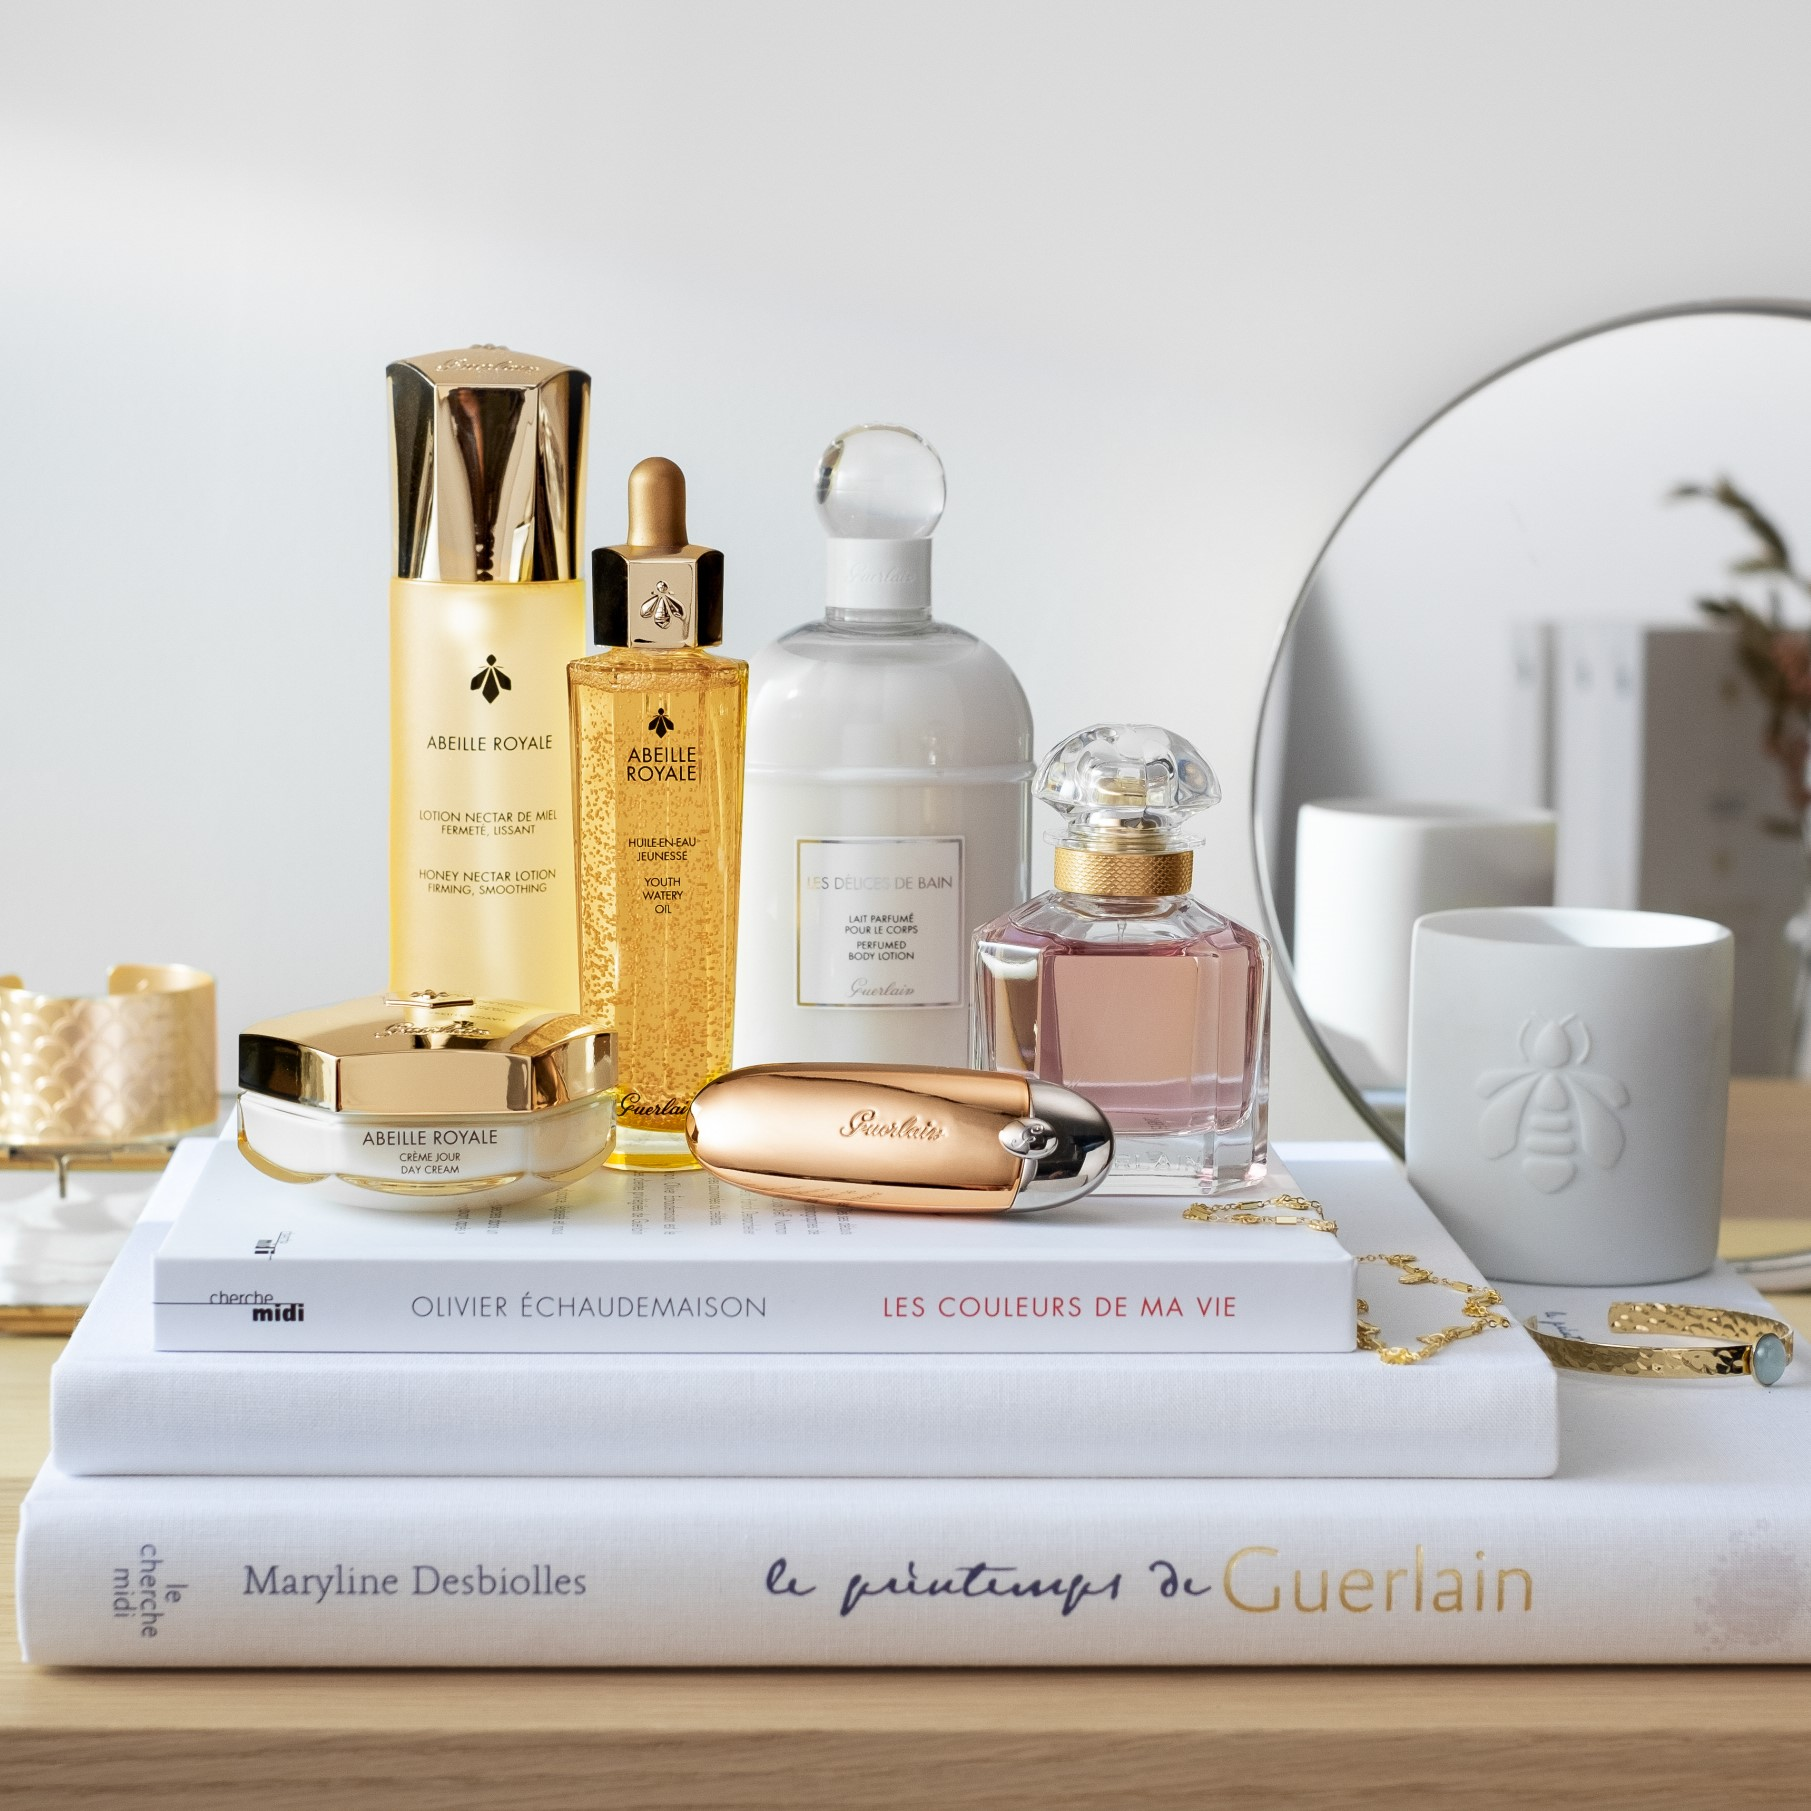 Take care with Guerlain